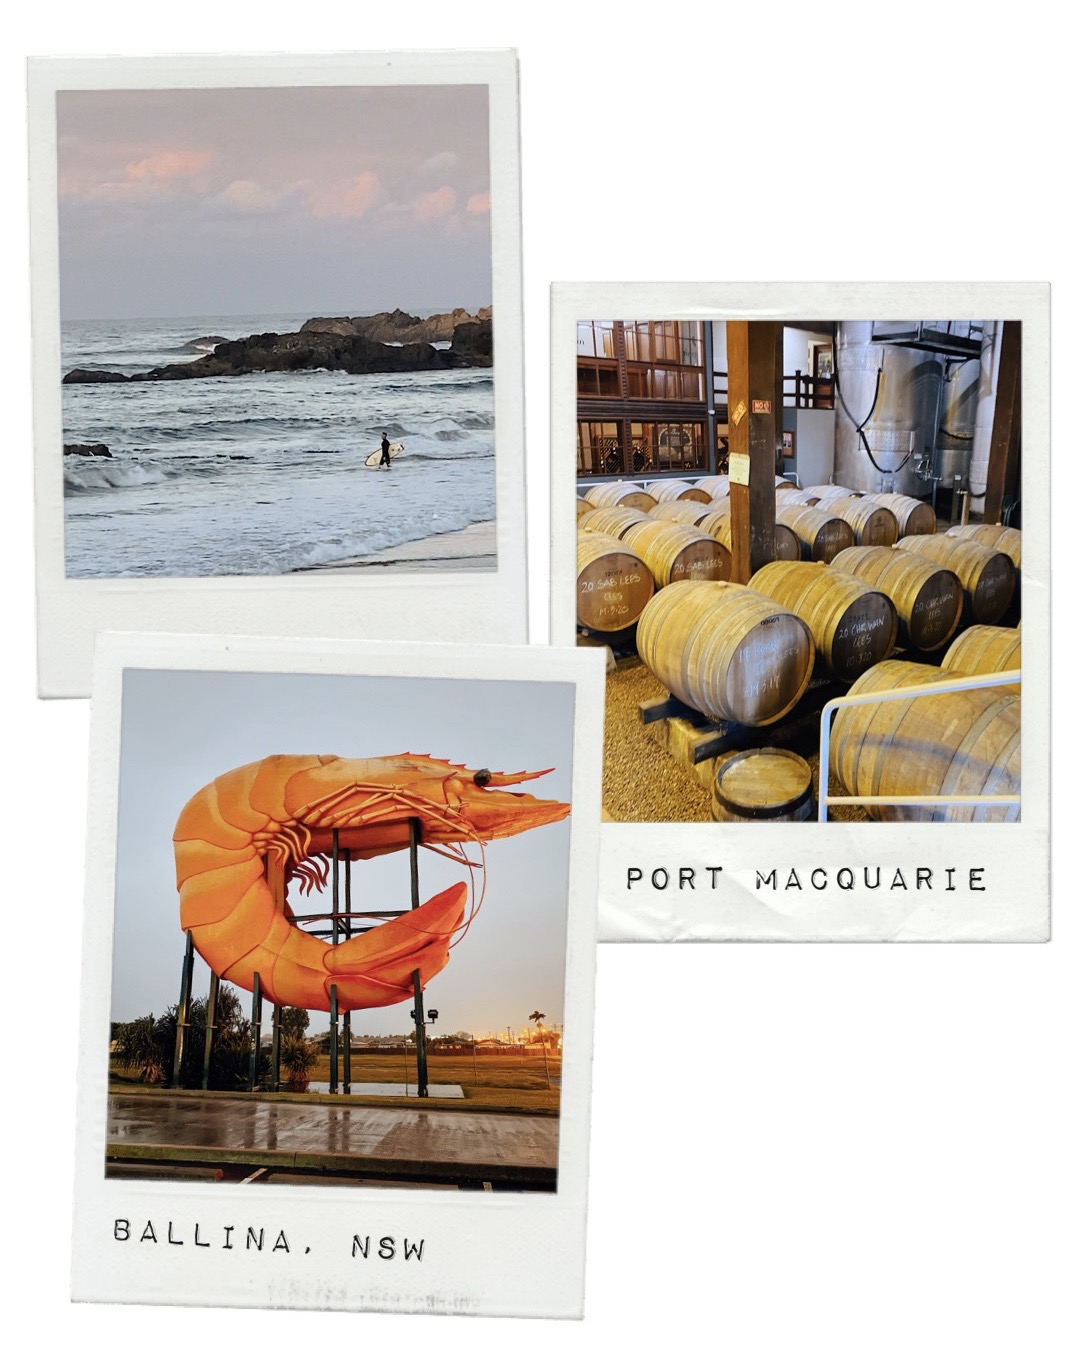 Port Macquarie beach, Cassegrain winery and Ballina's giant prawn